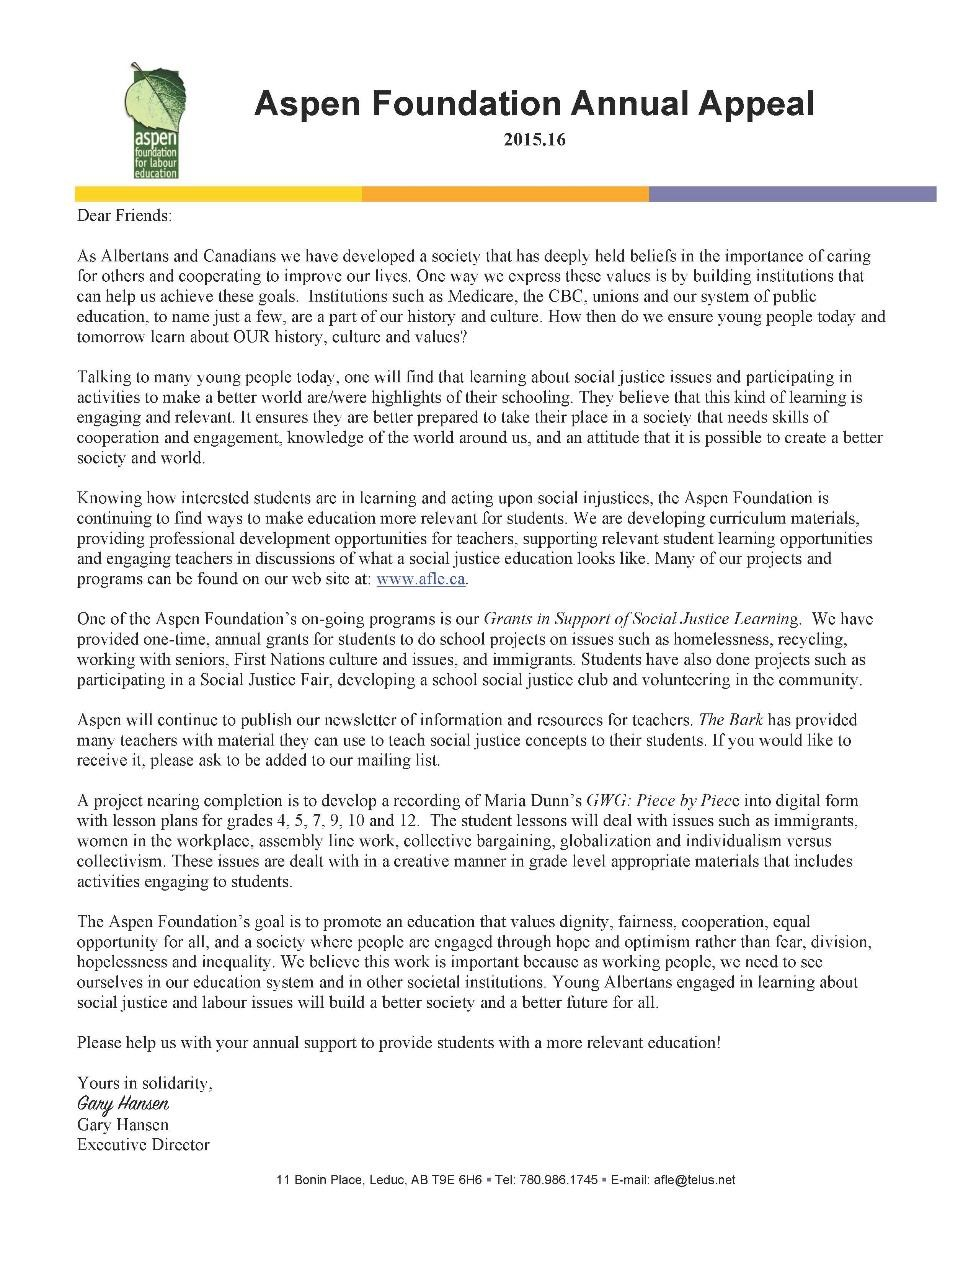 Aspen Foundation Annual Appeal Letter